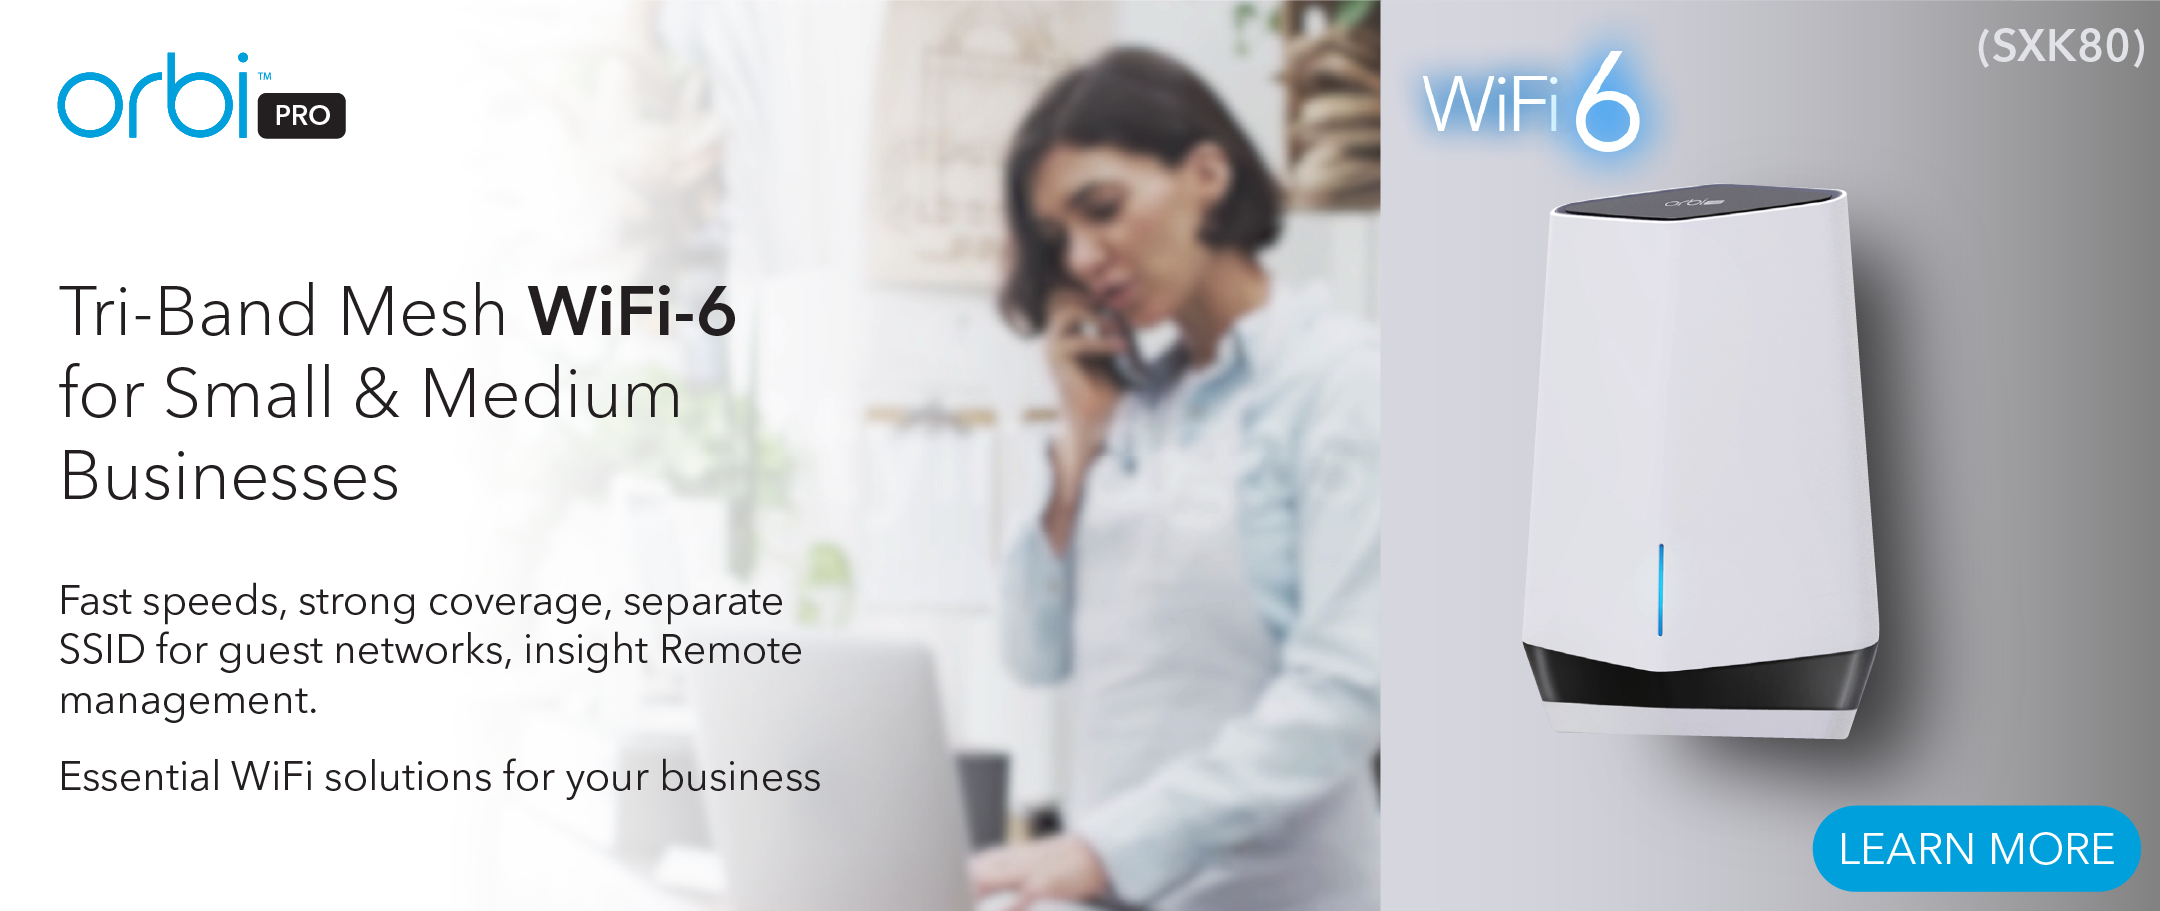 Orbi Pro Mesh WiFi System for Businesses